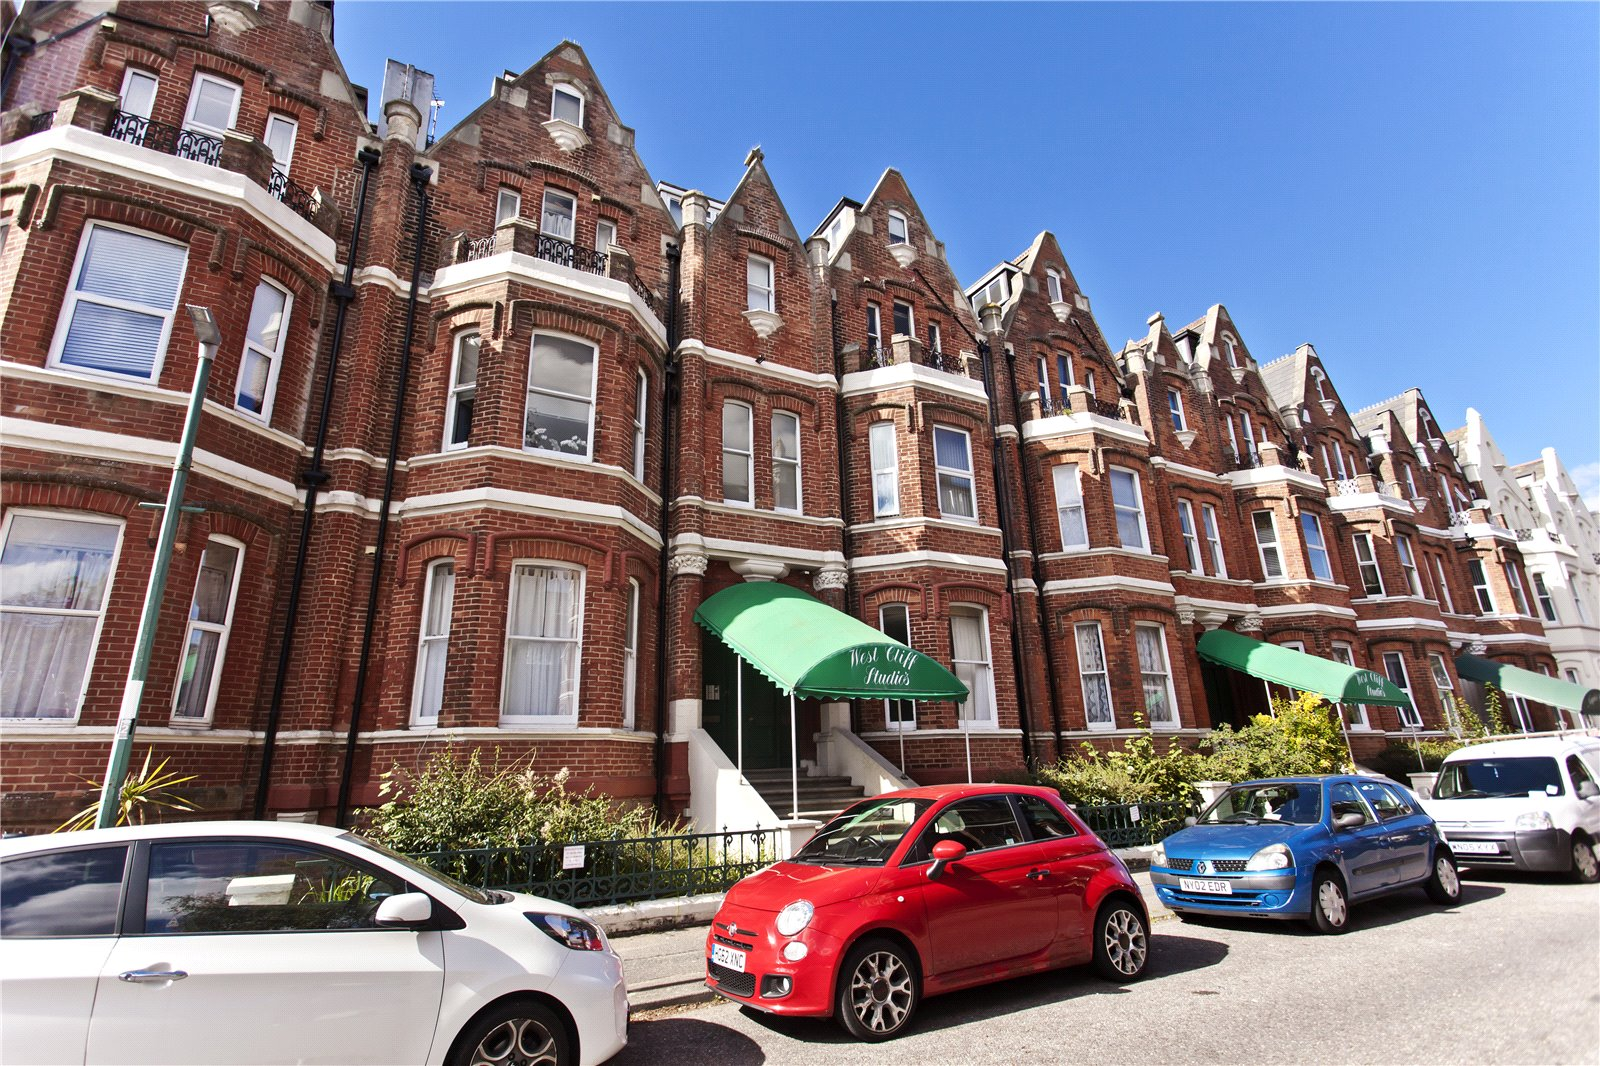 1 bed apartment for sale in West Cliff Studios, 7 Durley Gardens, BH2